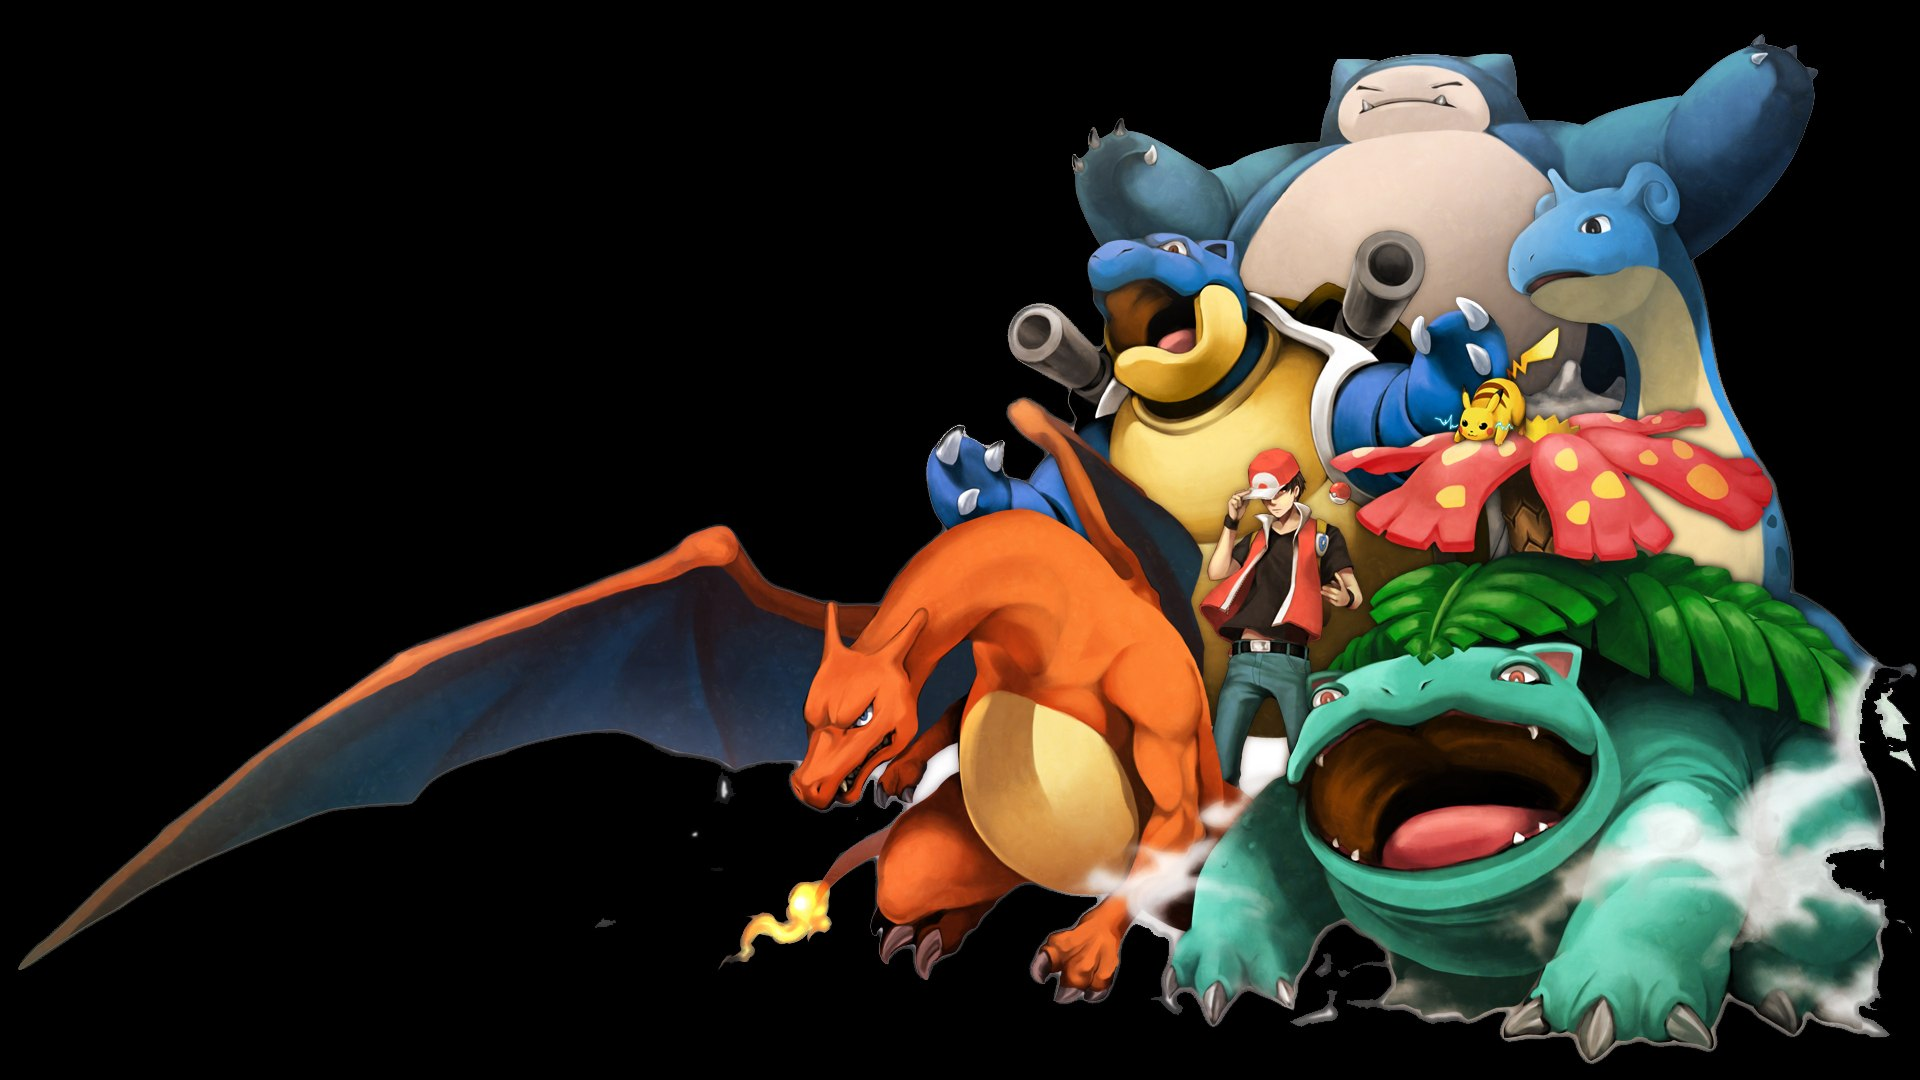 Pokemon Wallpaper 945 Desktop Images